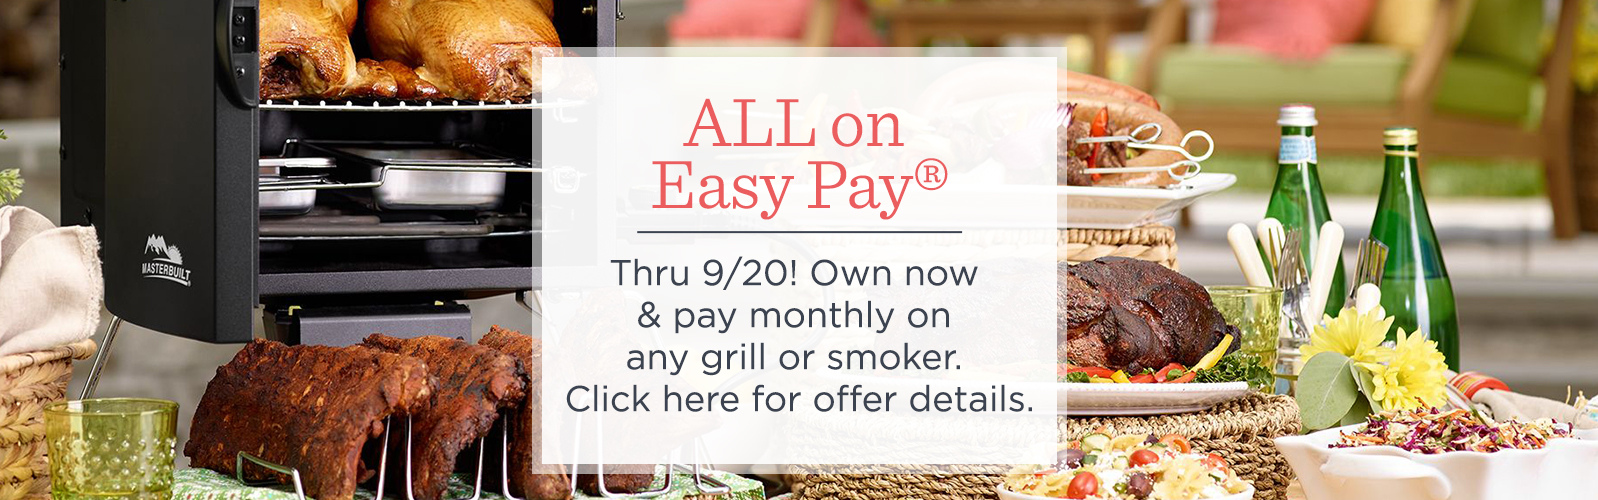 ALL on Easy Pay® . Thru 9/20! Own now & pay monthly on any grill or smoker.  Click here for offer details.